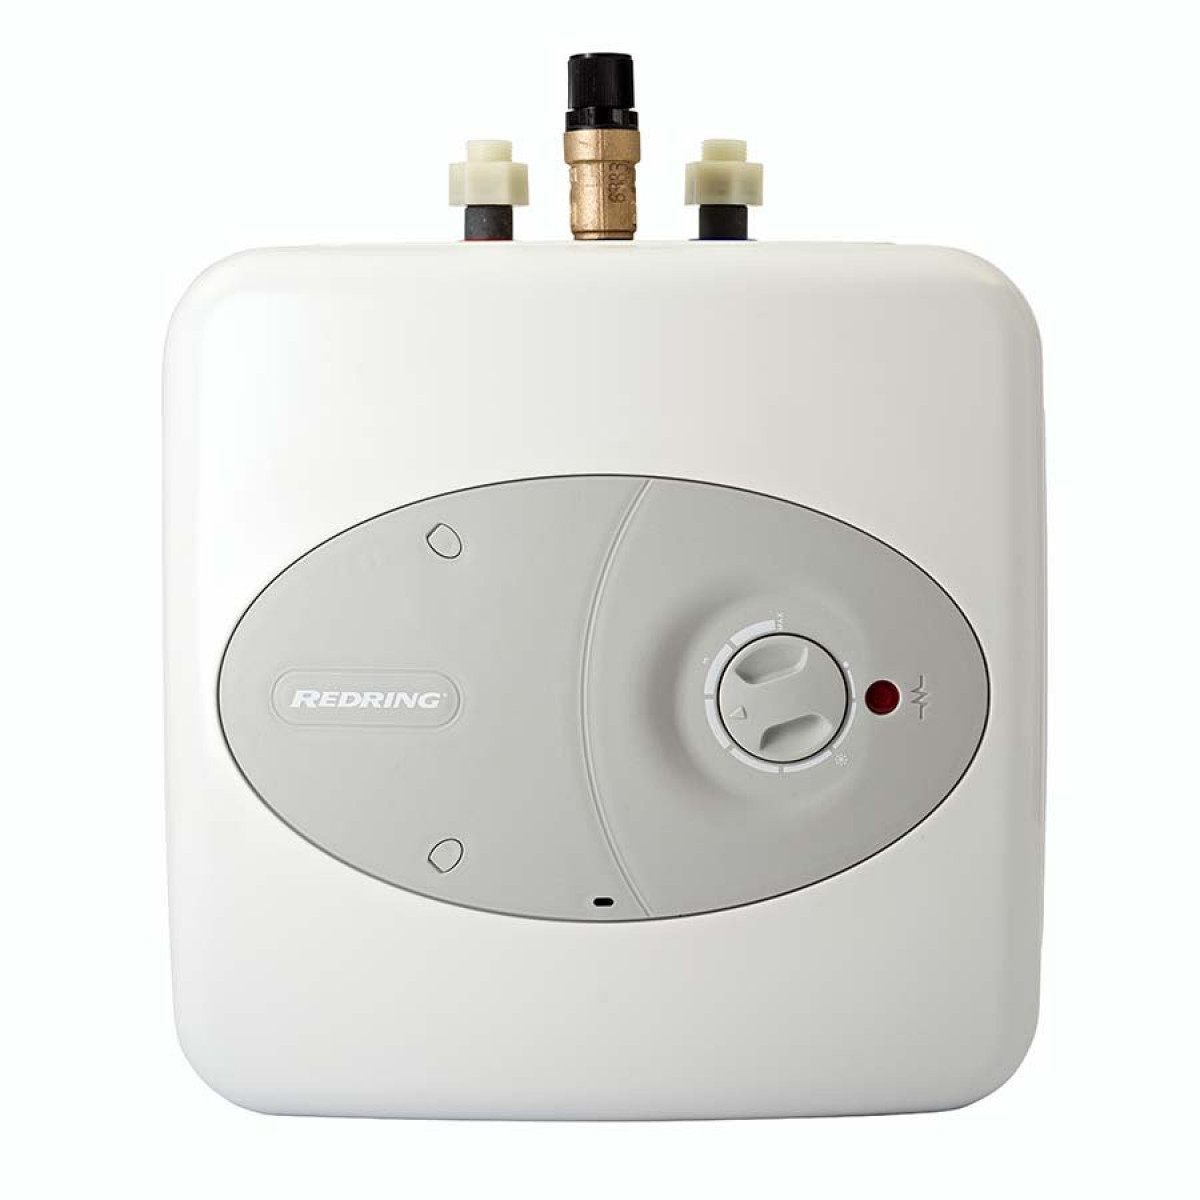 Redring Mw15 Unvented Water Heater